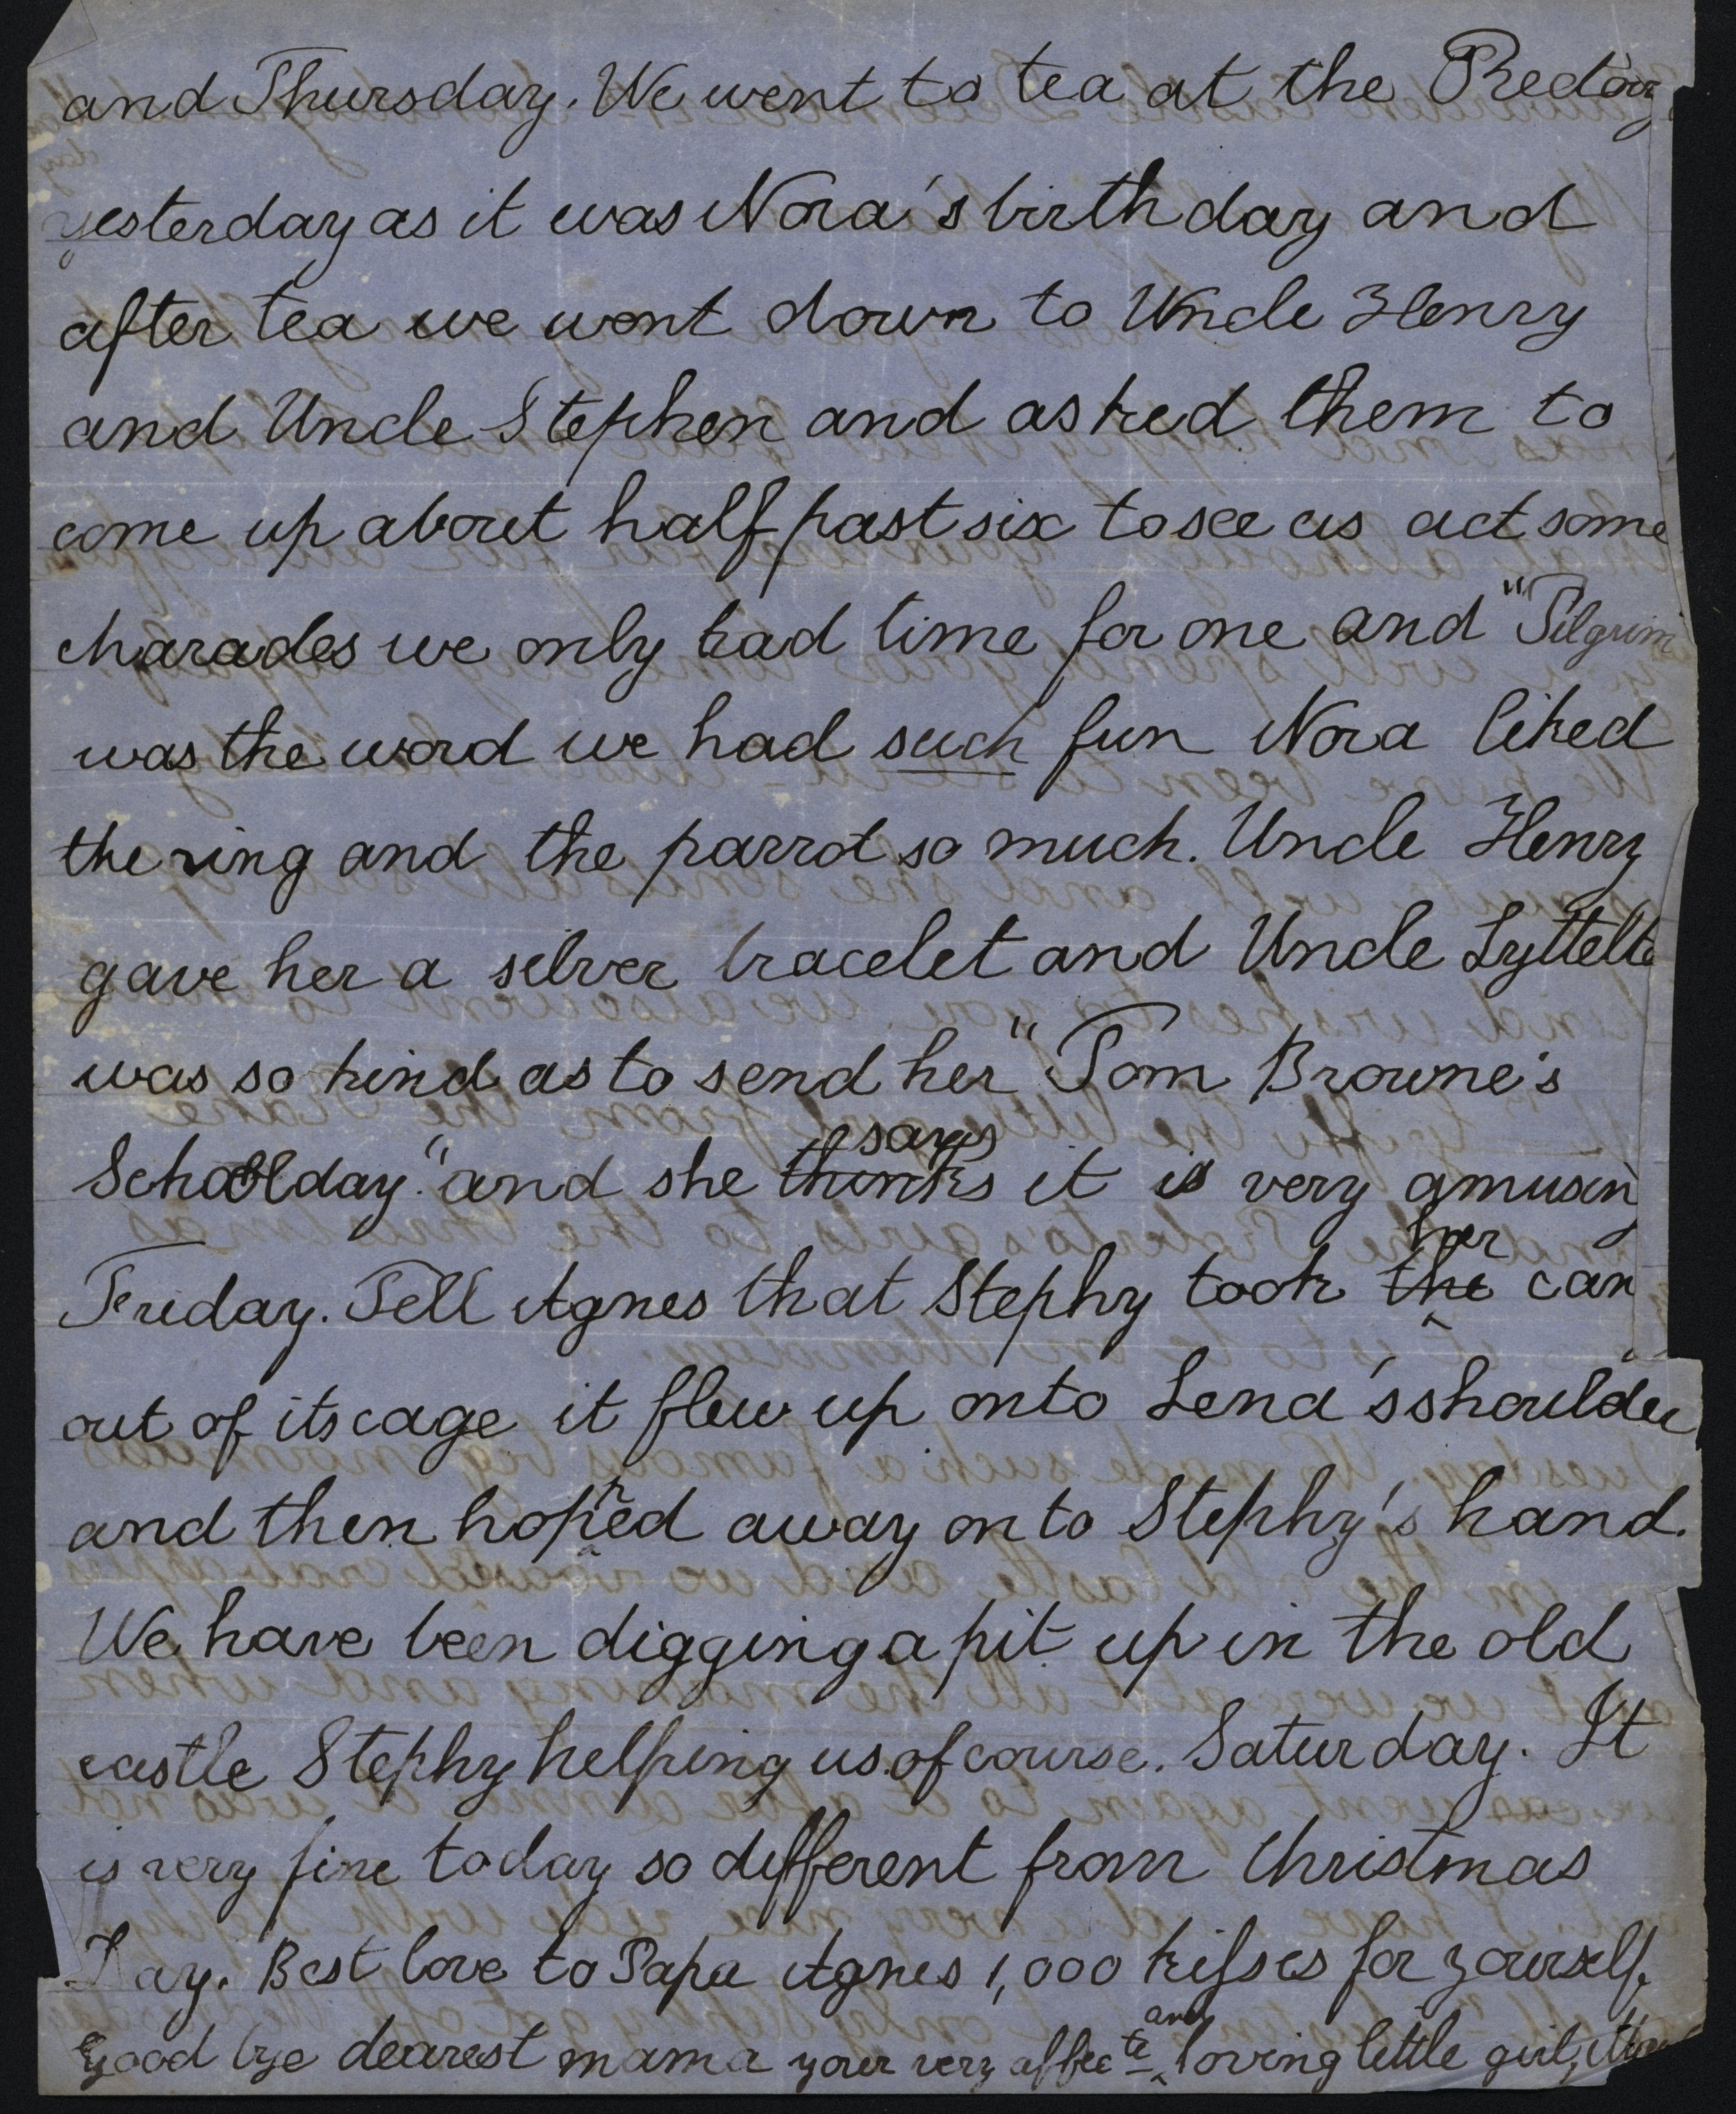 Mary Gladstone to Catherine Gladstone, 27 December [1858]. GG 759. The transcription of the letter appears in full at the end of the post.